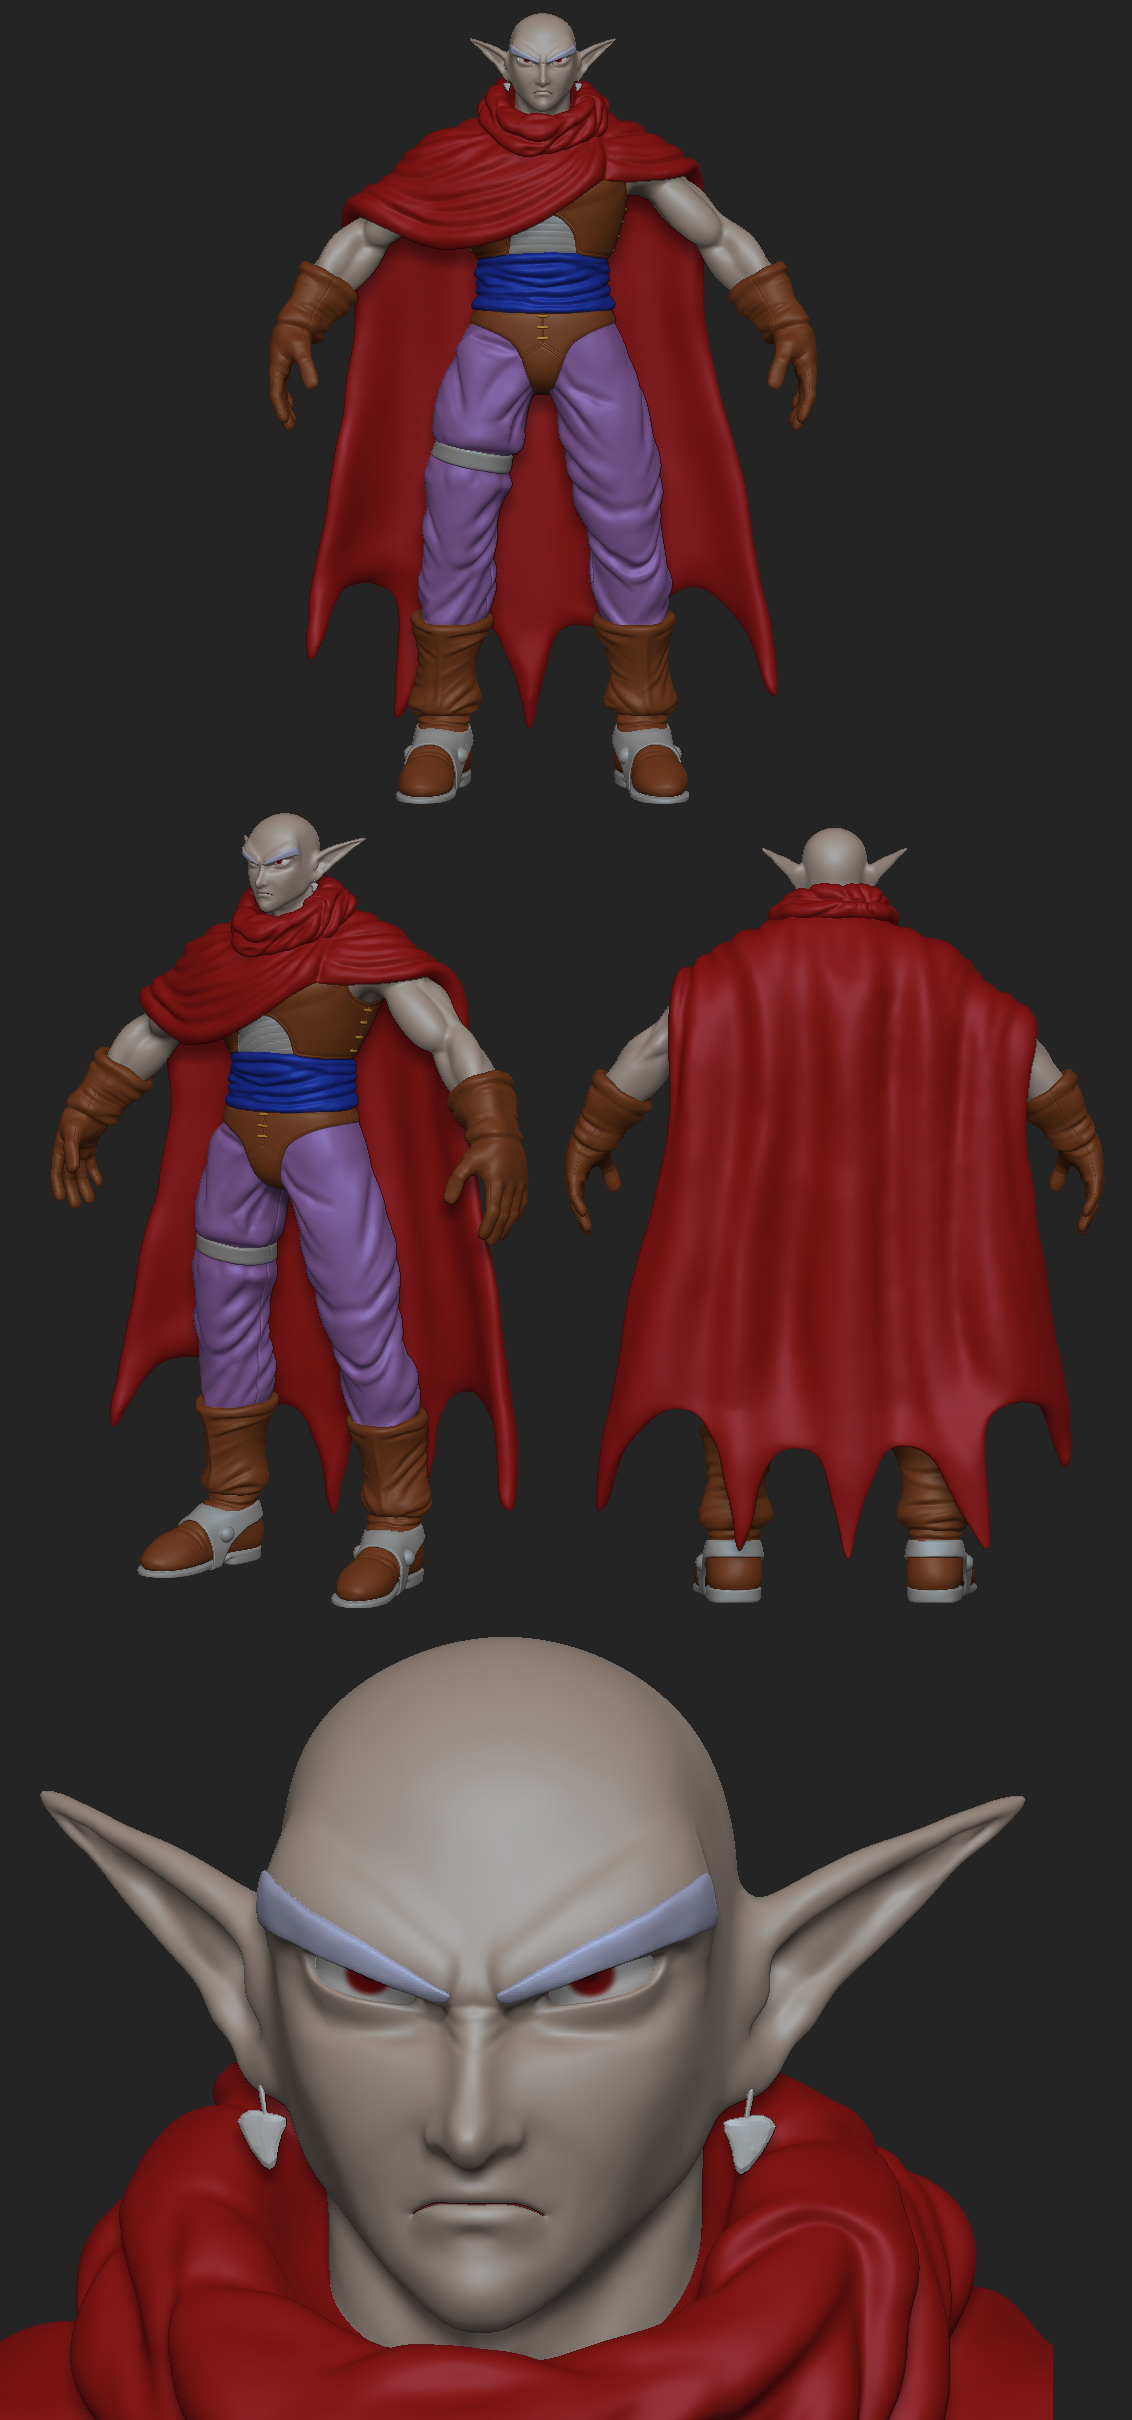 magus_wip04_by_theartistictiger-d9byfin.jpg